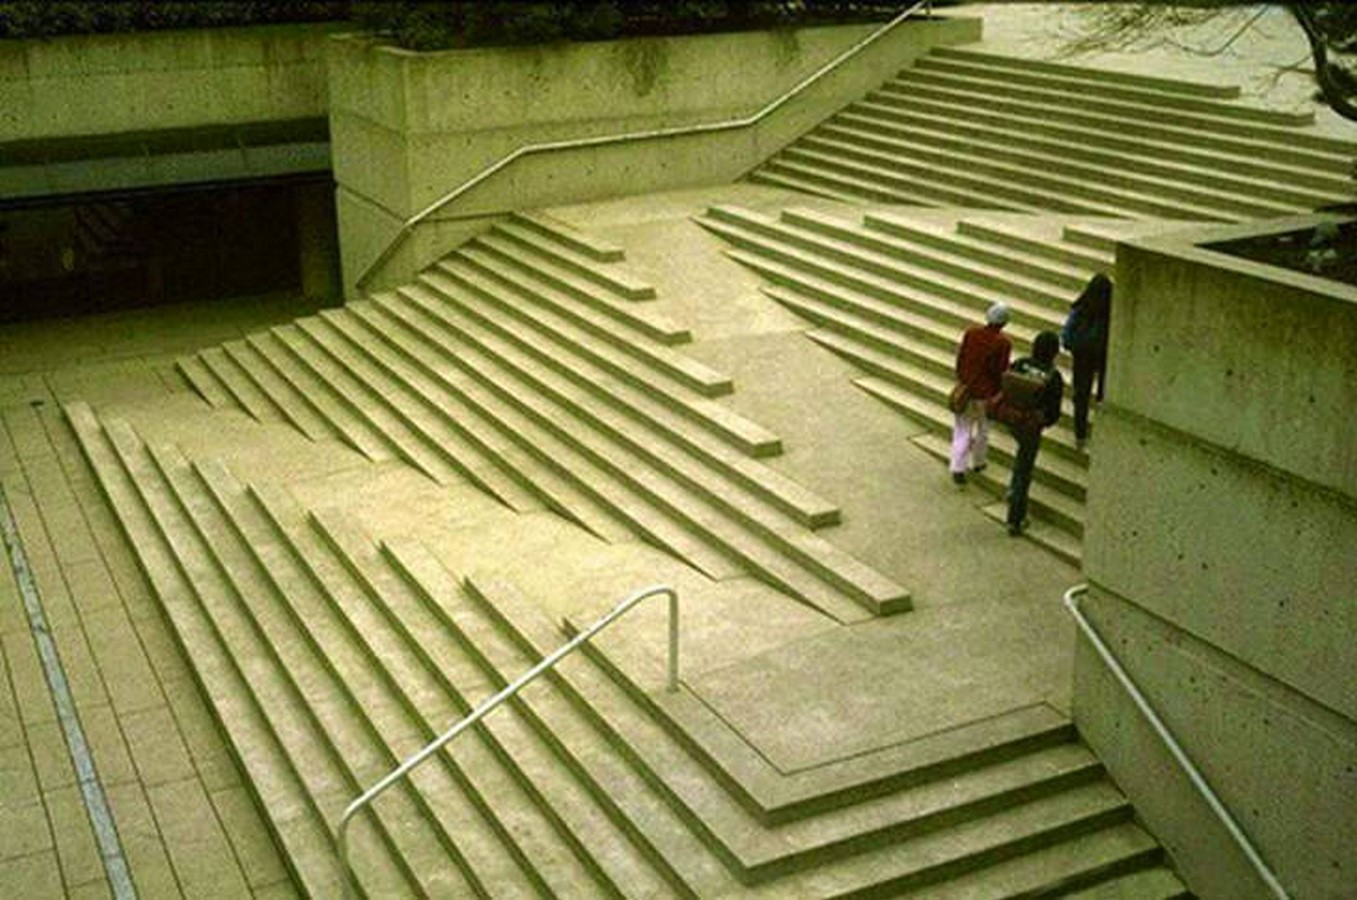 Role of Architects in Designing Barrier-Free Public Spaces - Sheet2